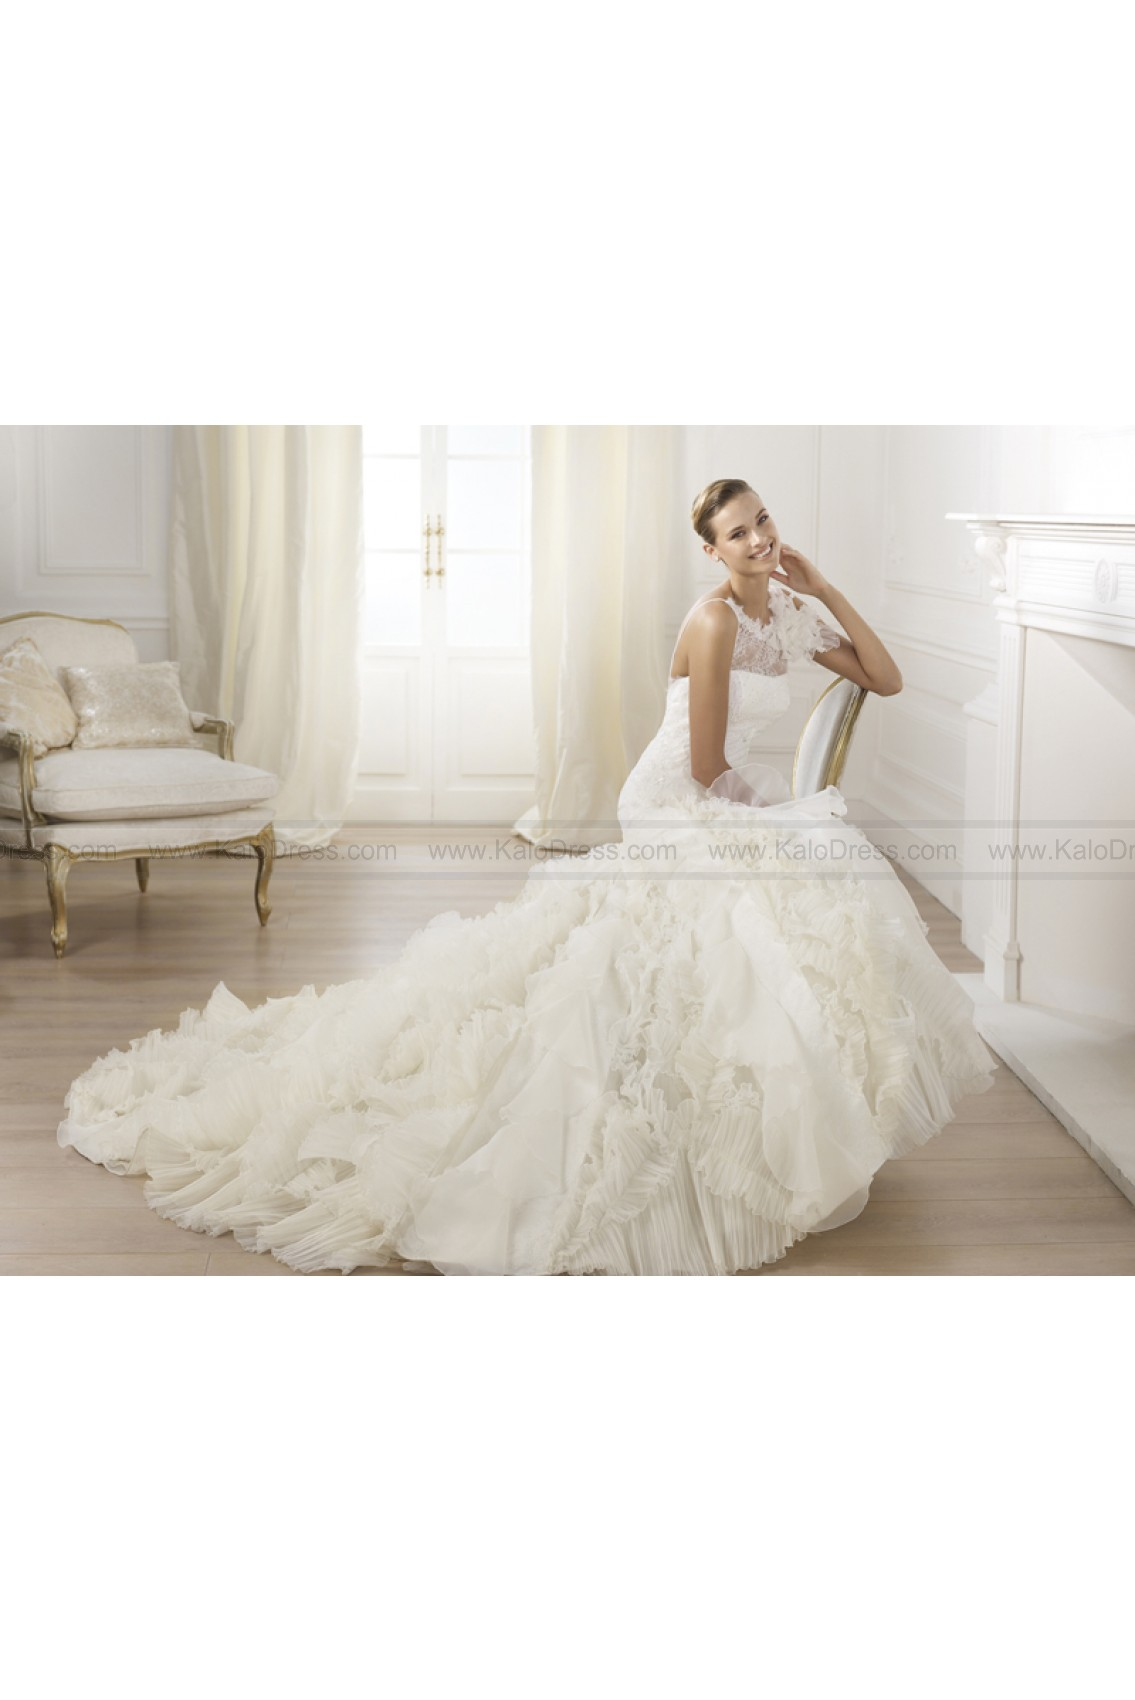 Pronovias Wedding Dresses - Style Leandra - Wedding Dresses 2014 New - Formal Wedding Dresses